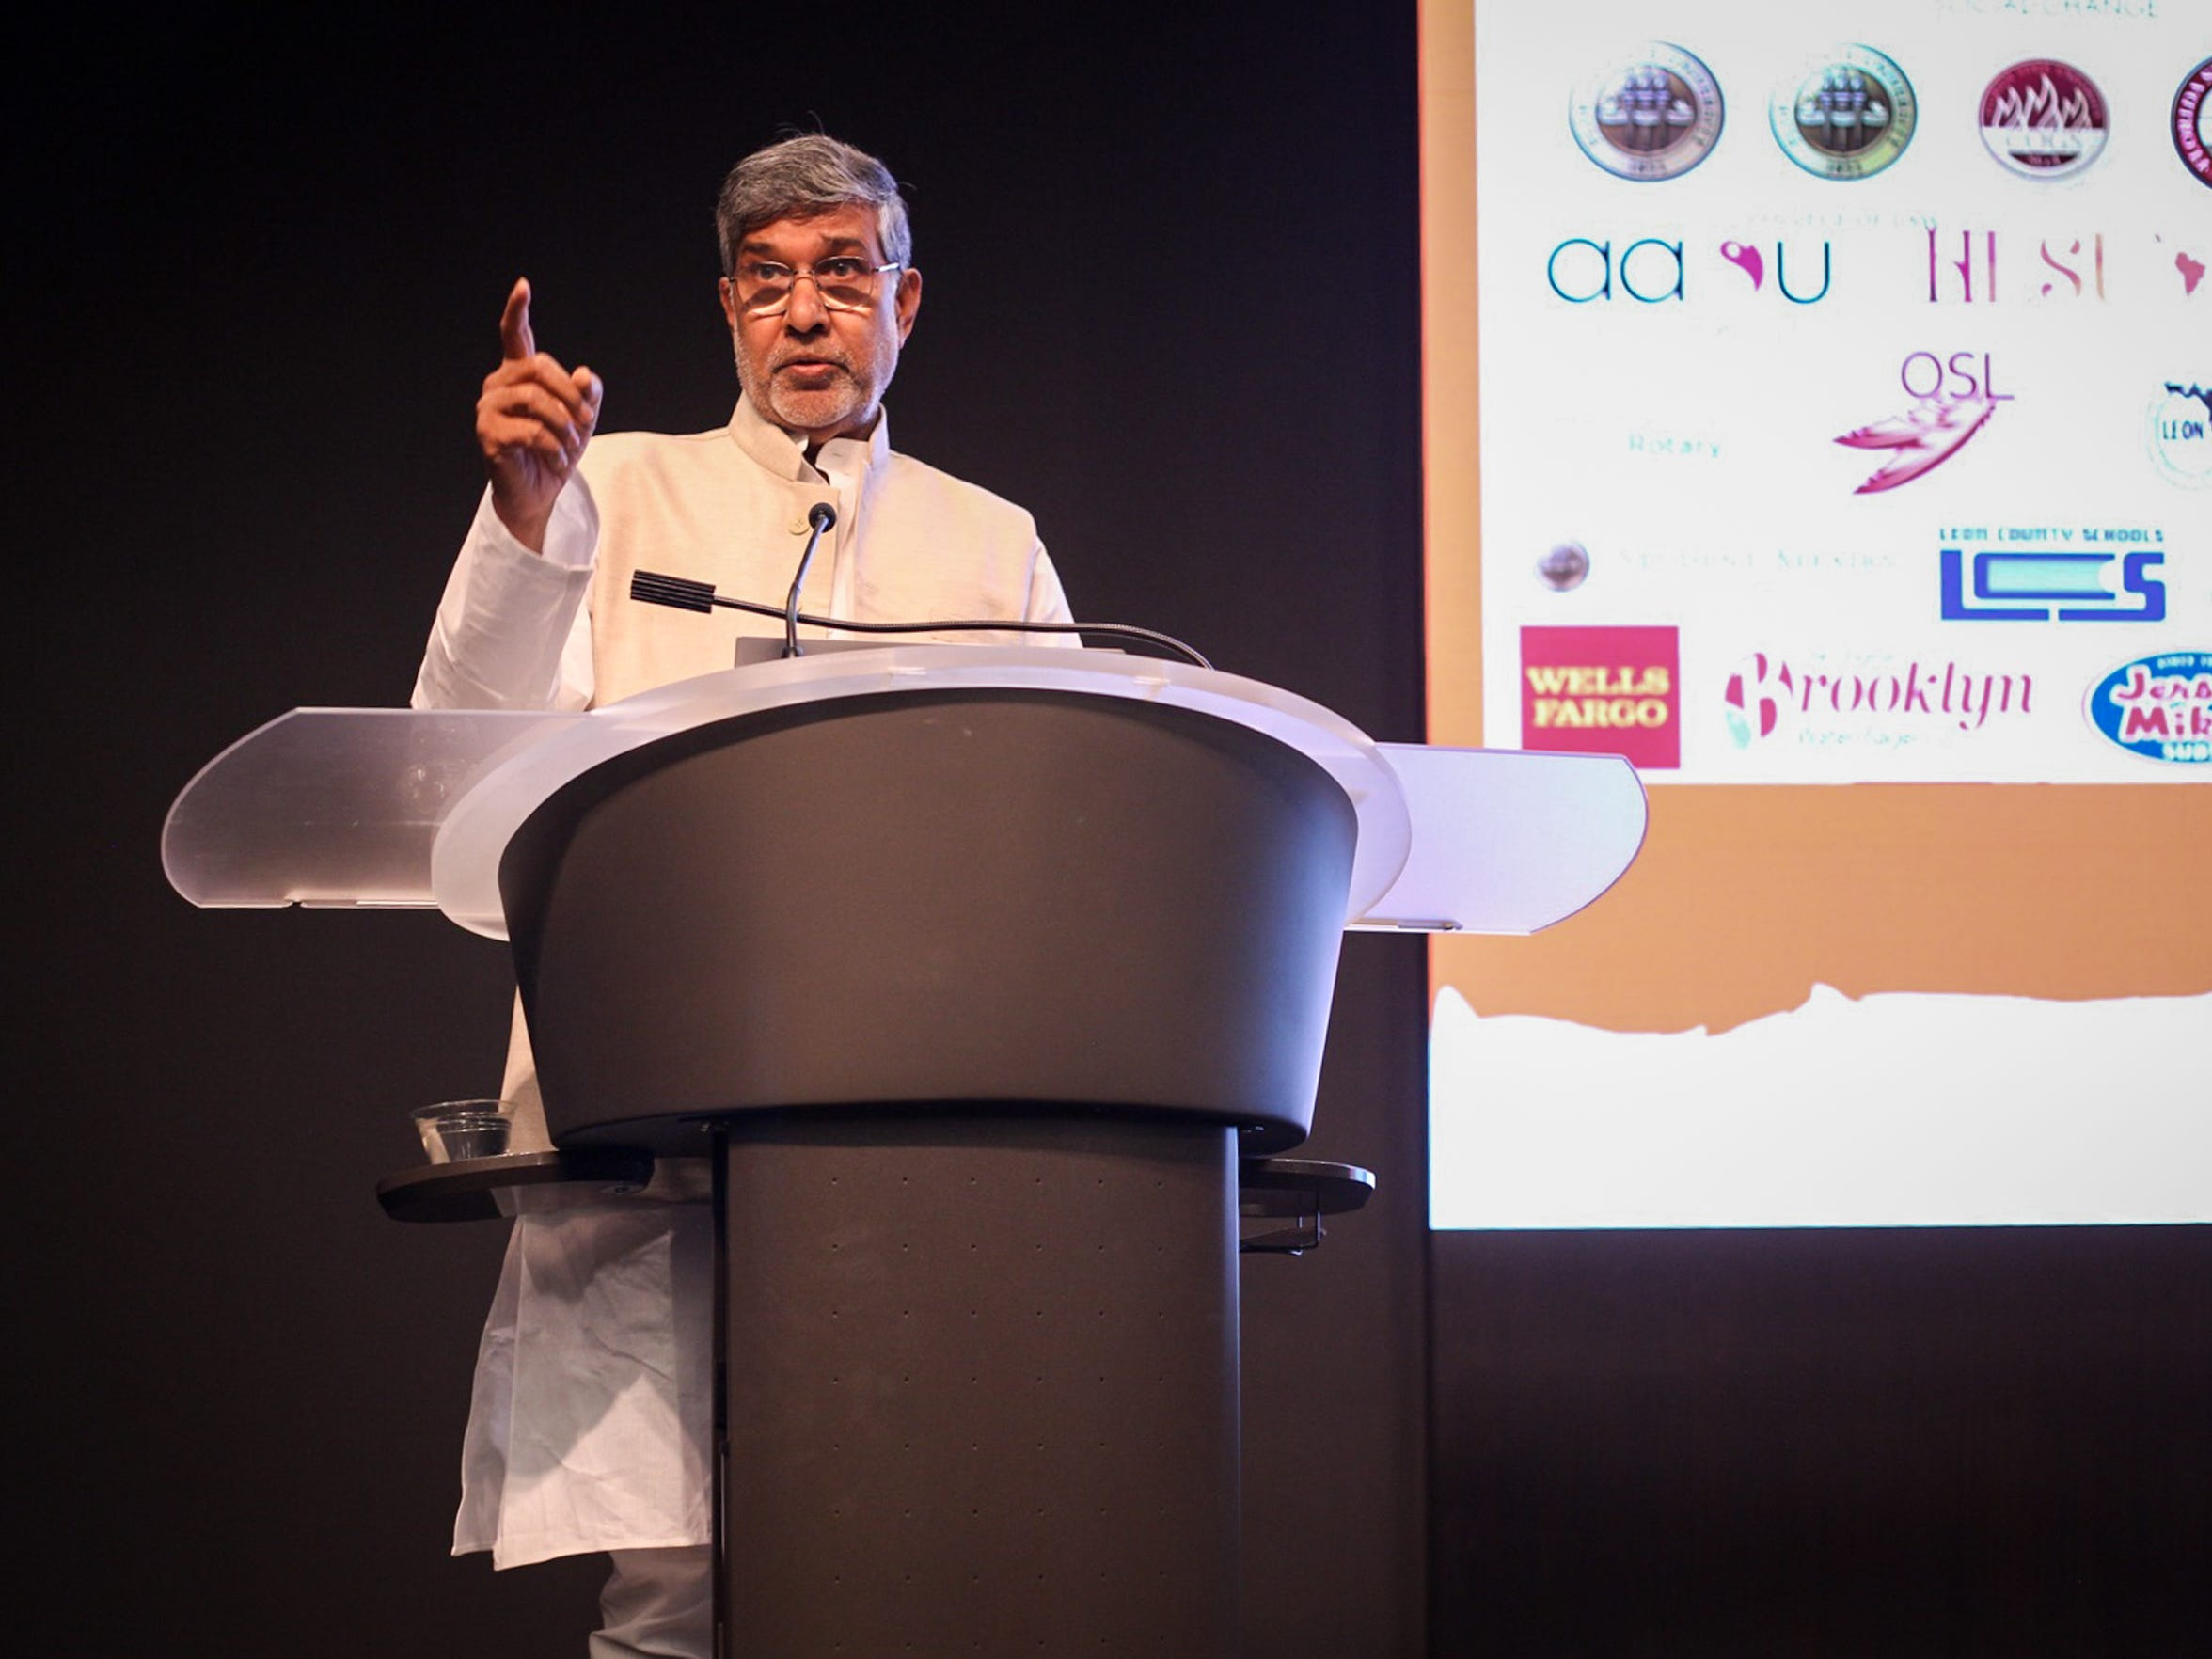 After his public talk, Kailash Satyarthi hosted a weekend